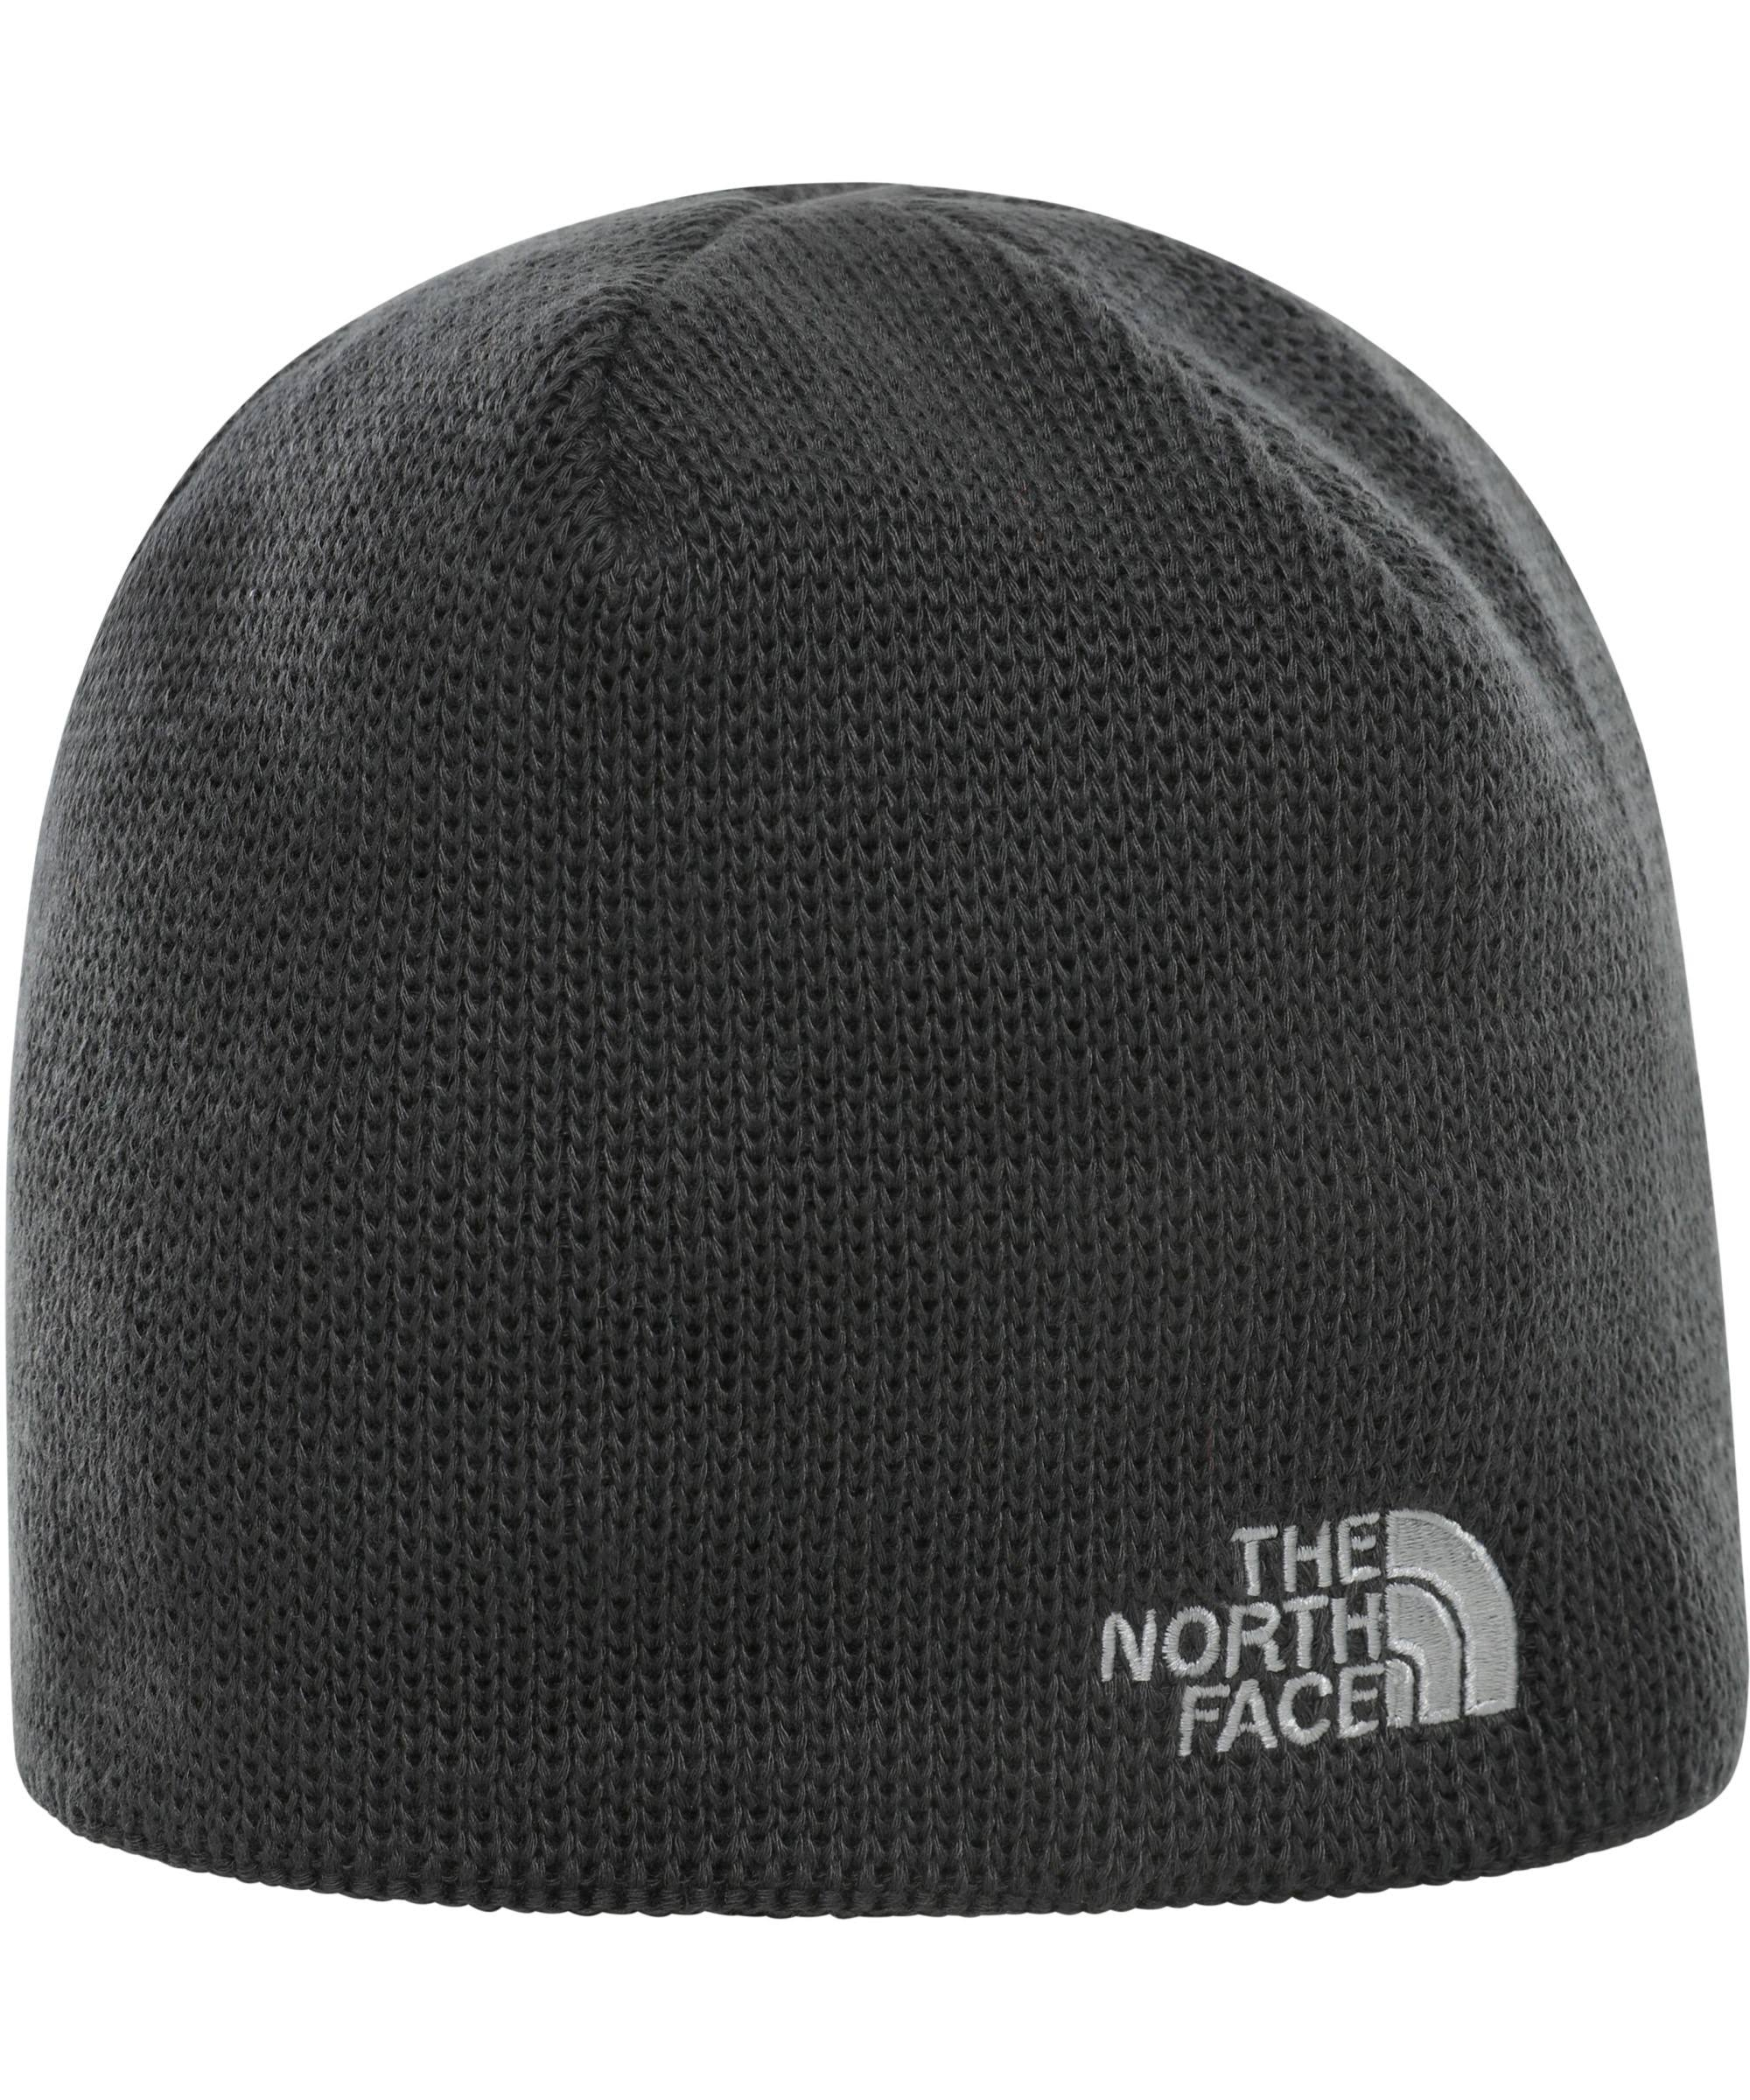 The North Face Bones Recycled Beanie - Asphalt Grey